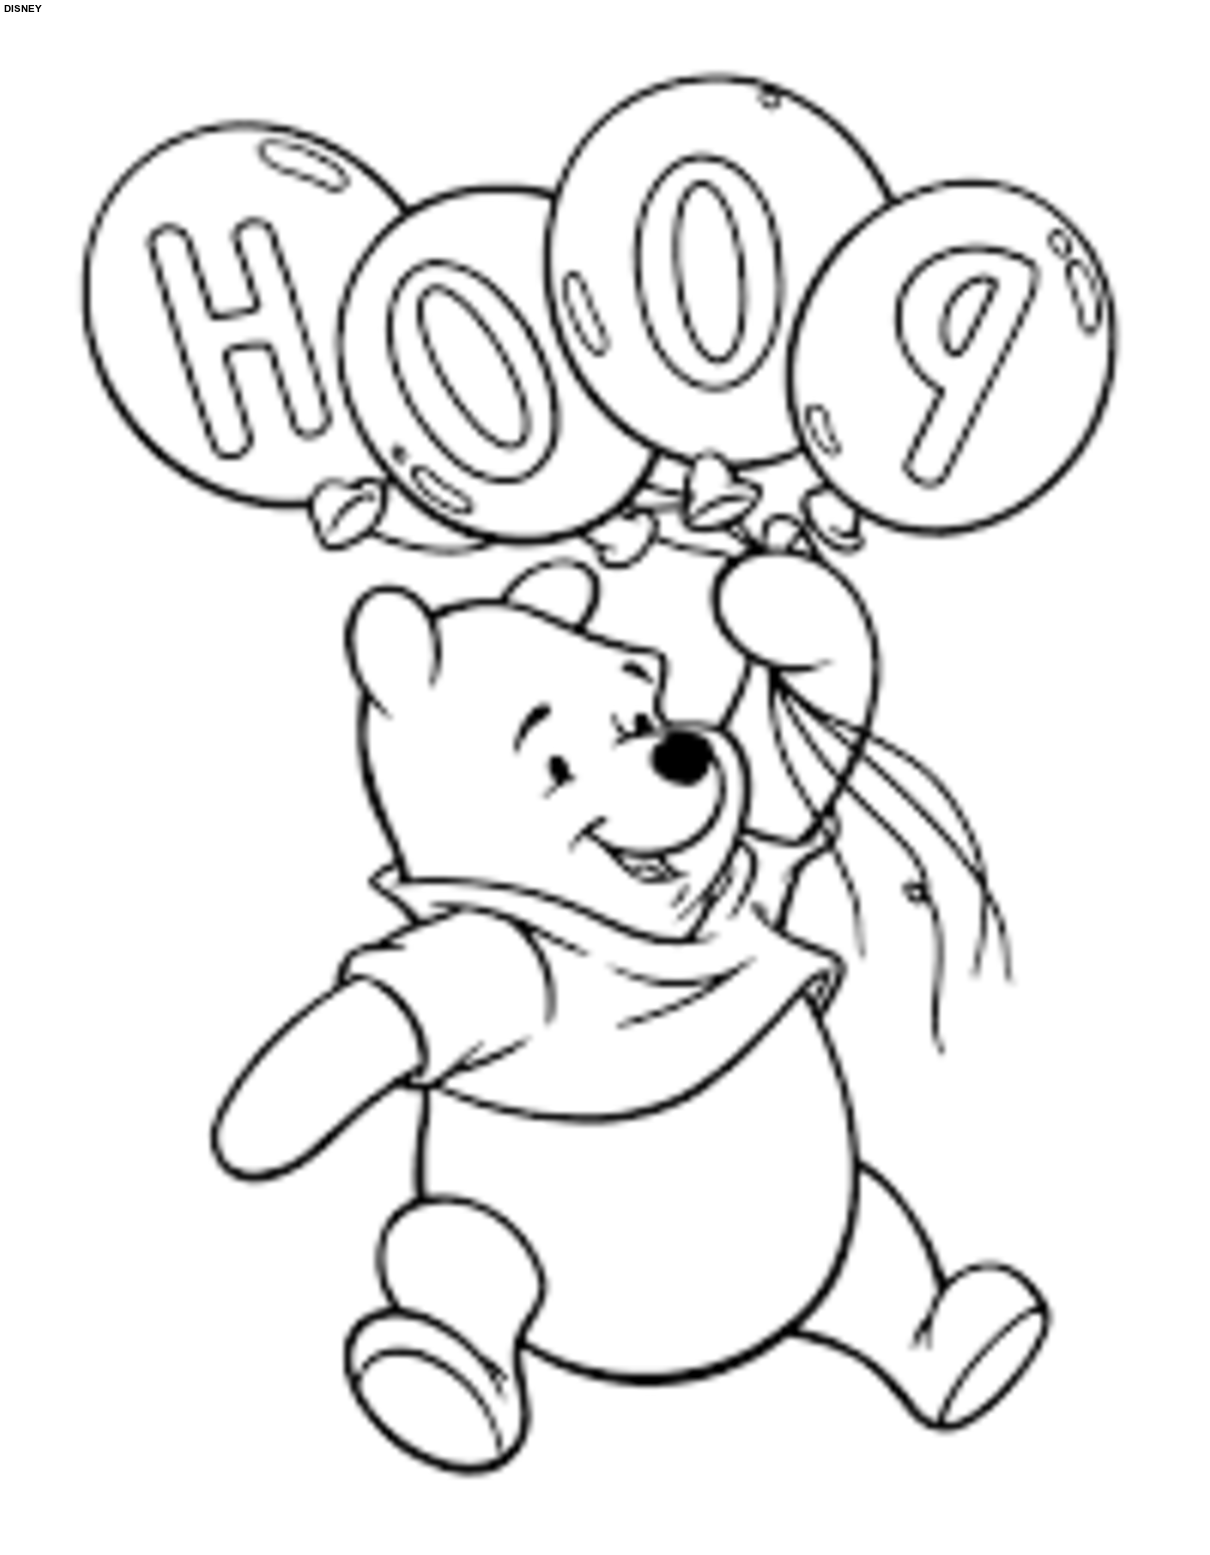 Disney Colouring Pages Cartoon Characters Coloring Pages For Boy Disney Color Page